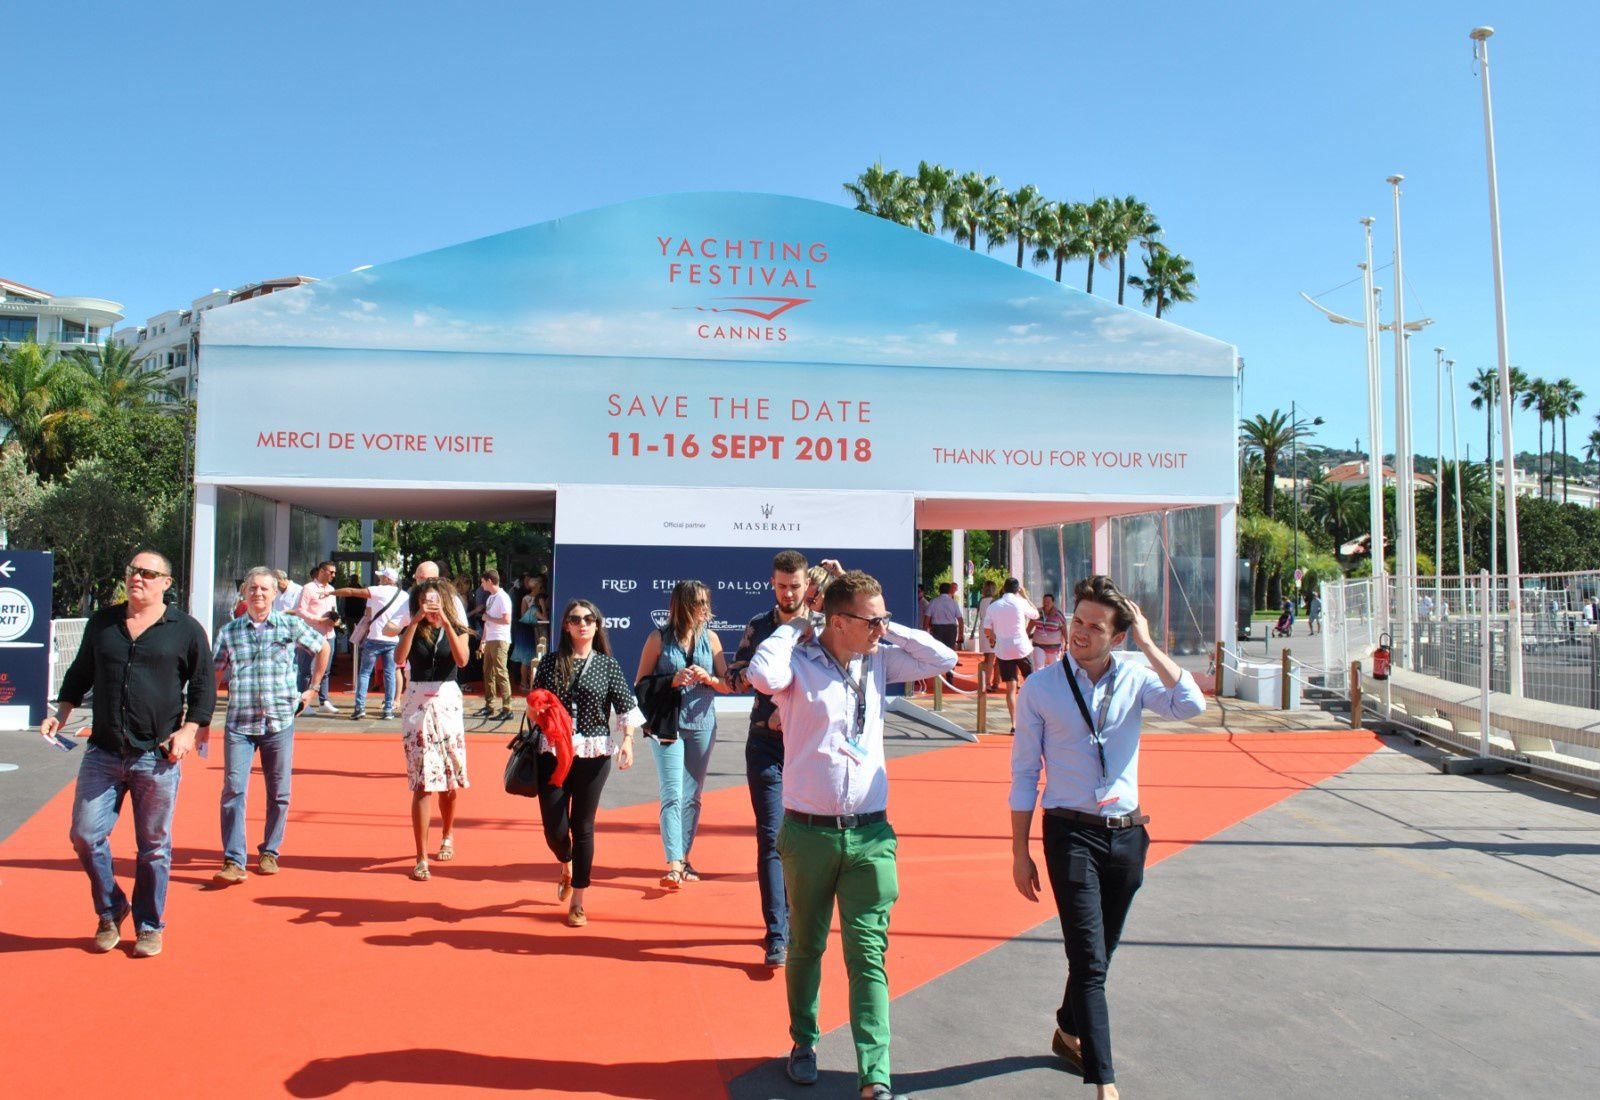 Cannes yachting festival 2017 royal monaco riviera issn for Salon nautique cannes 2017